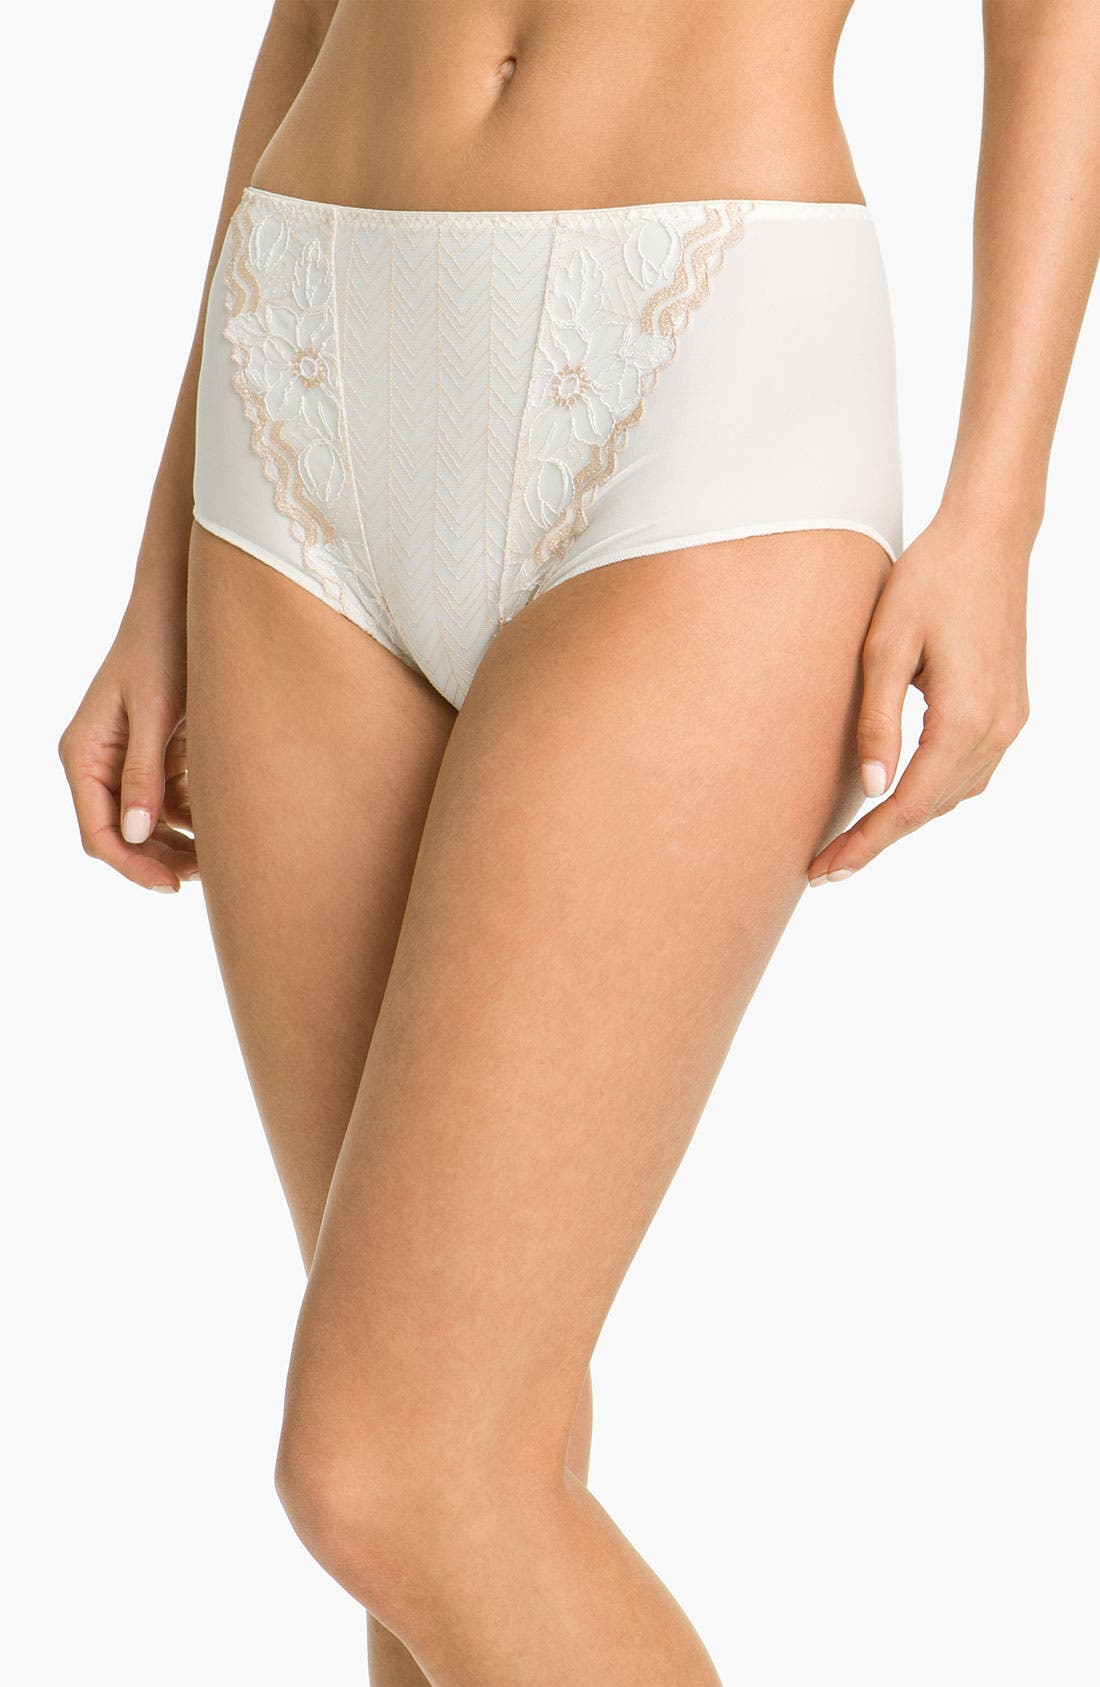 Alternate Image 1 Selected - Chantelle Intimates 'Saint Honoré' High Waist Briefs